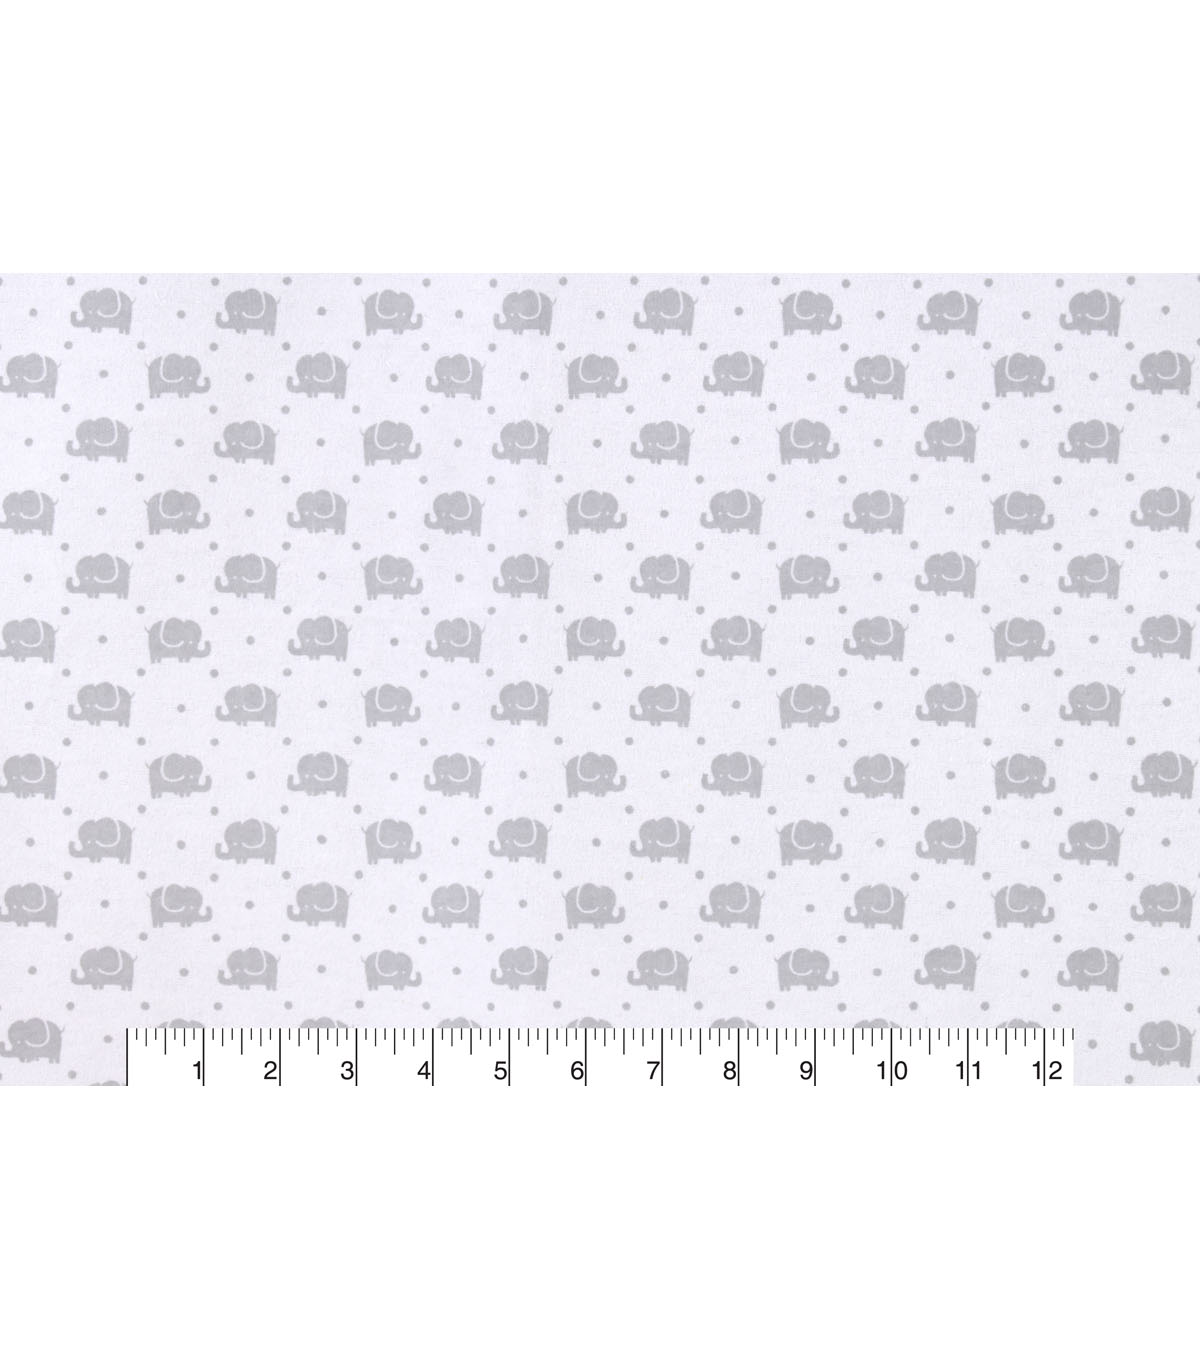 Snuggle Flannel Fabric -Gray Elephants Marching